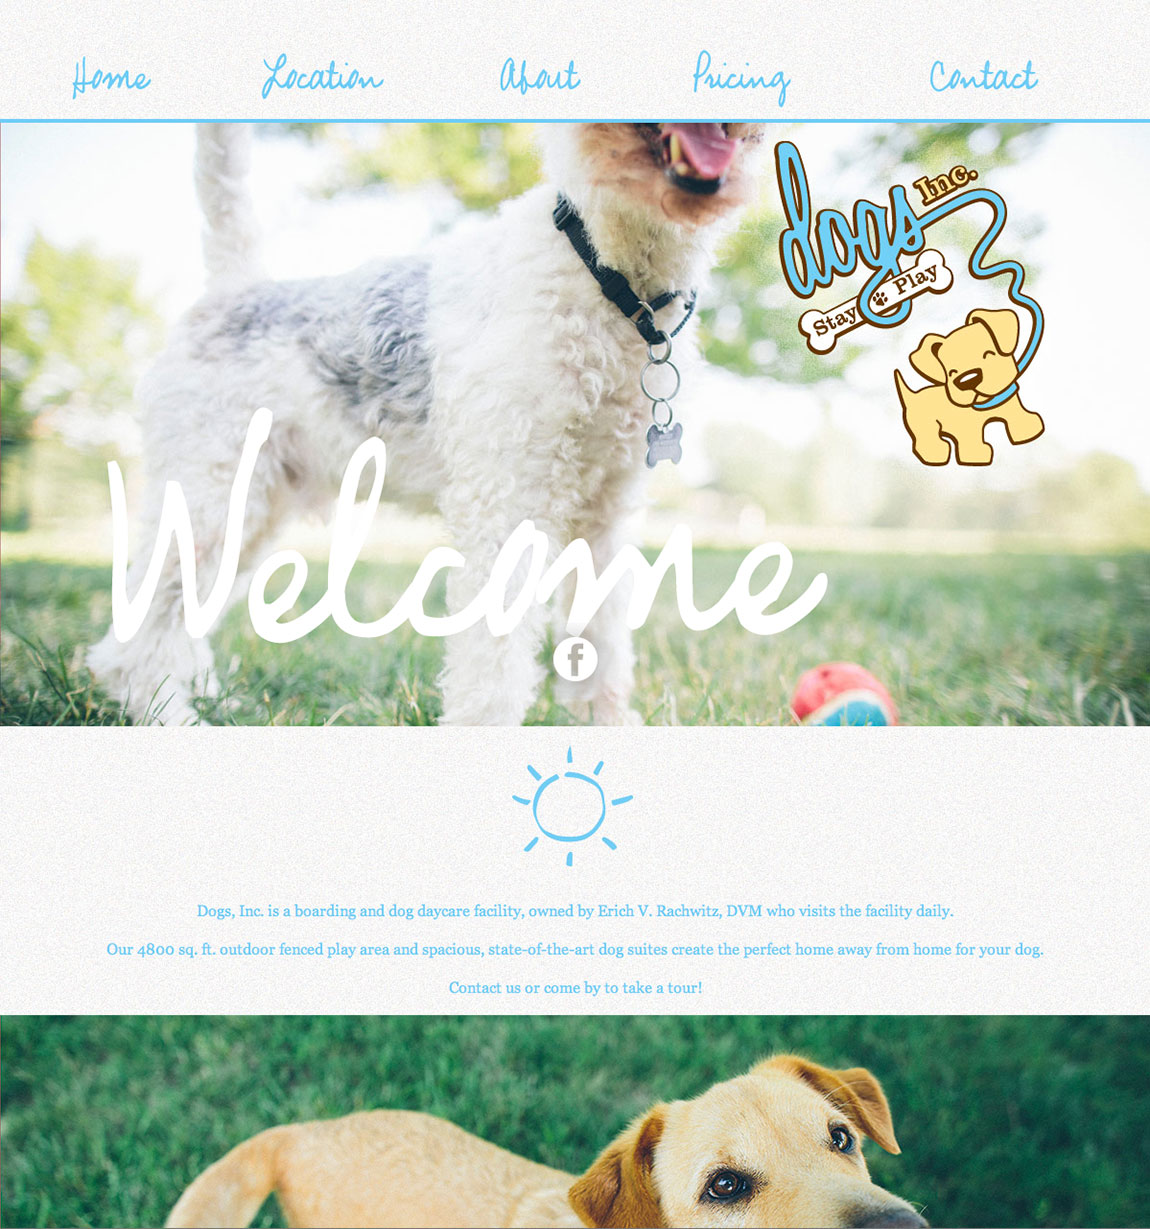 Dogs, Inc. Website Screenshot